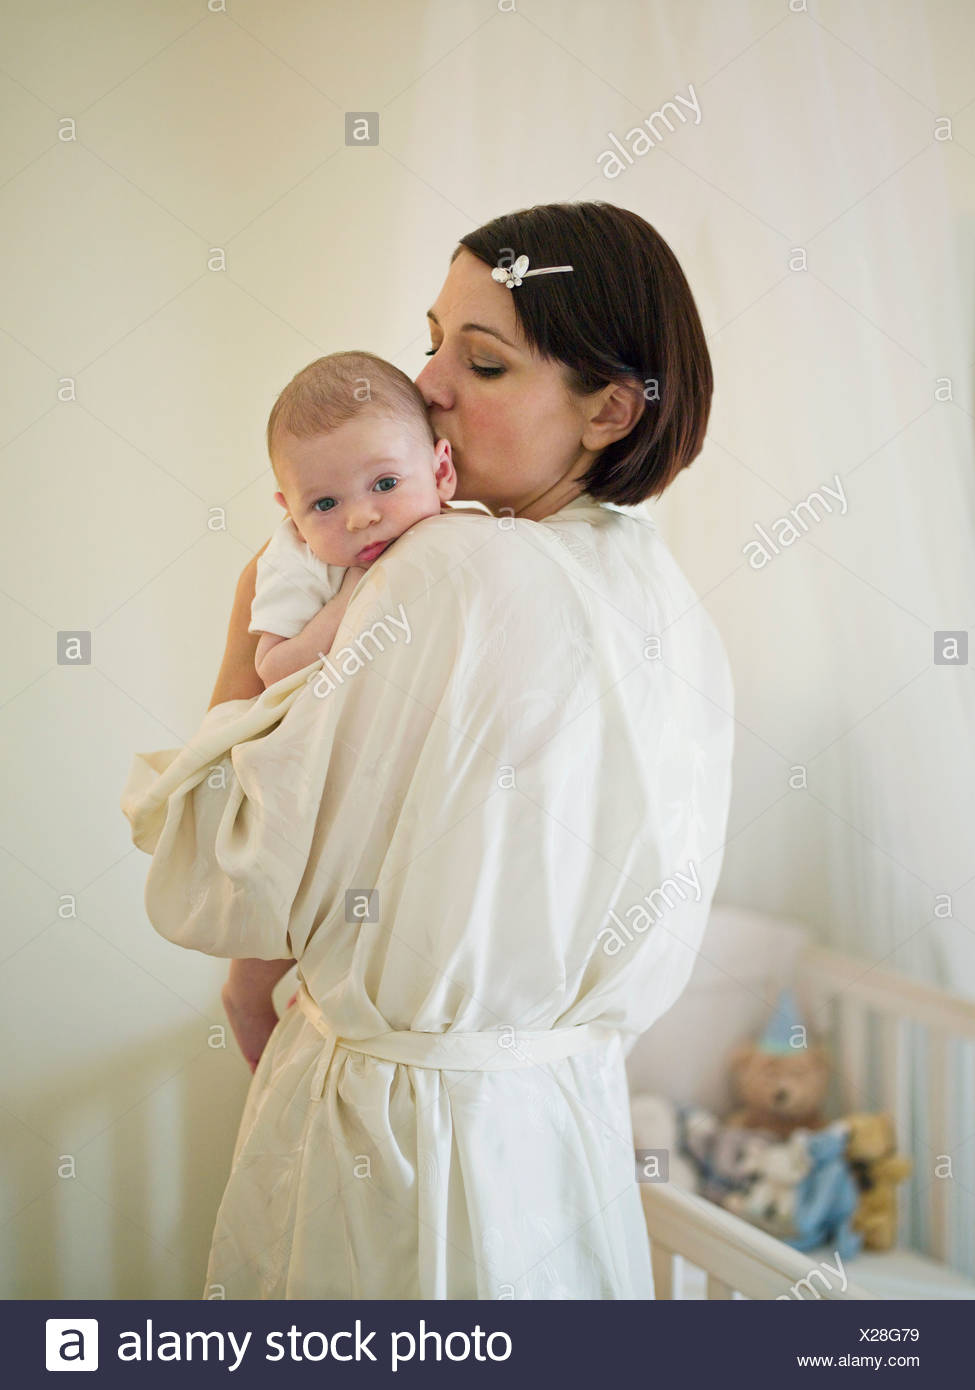 A mother holding a new born baby - Stock Image